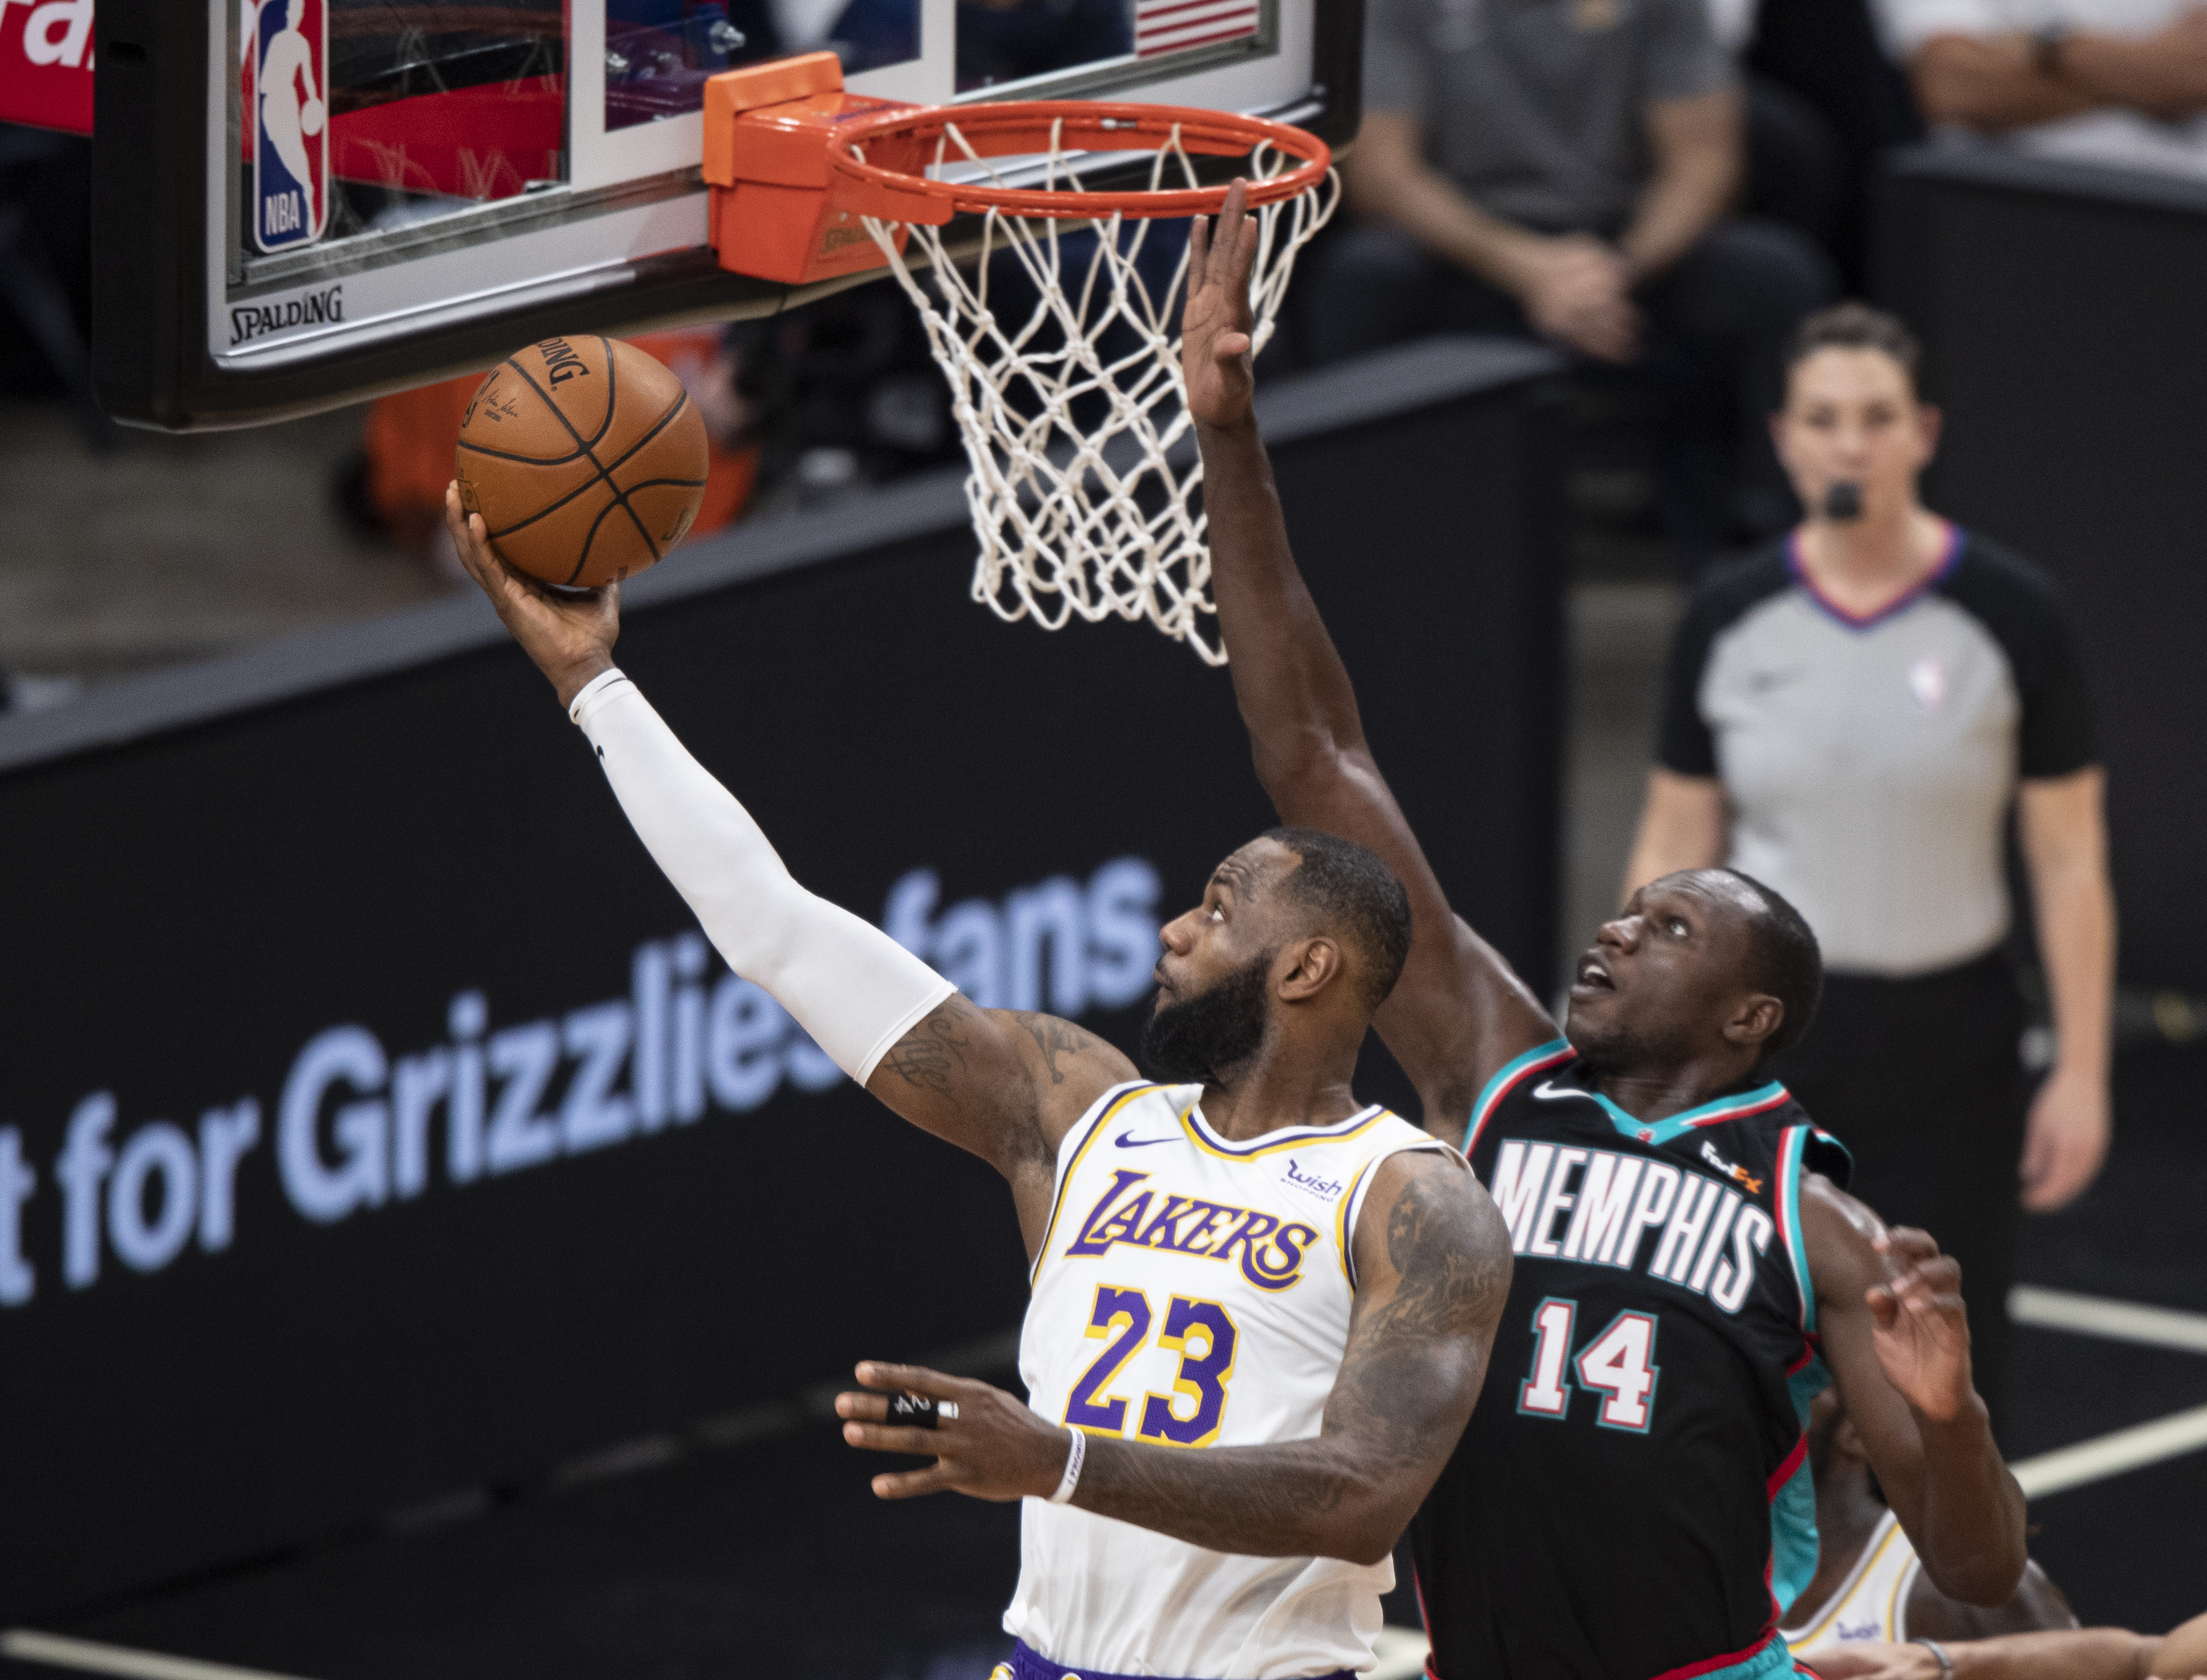 LeBron James leads Lakers to victory over Grizzlies, 108-94